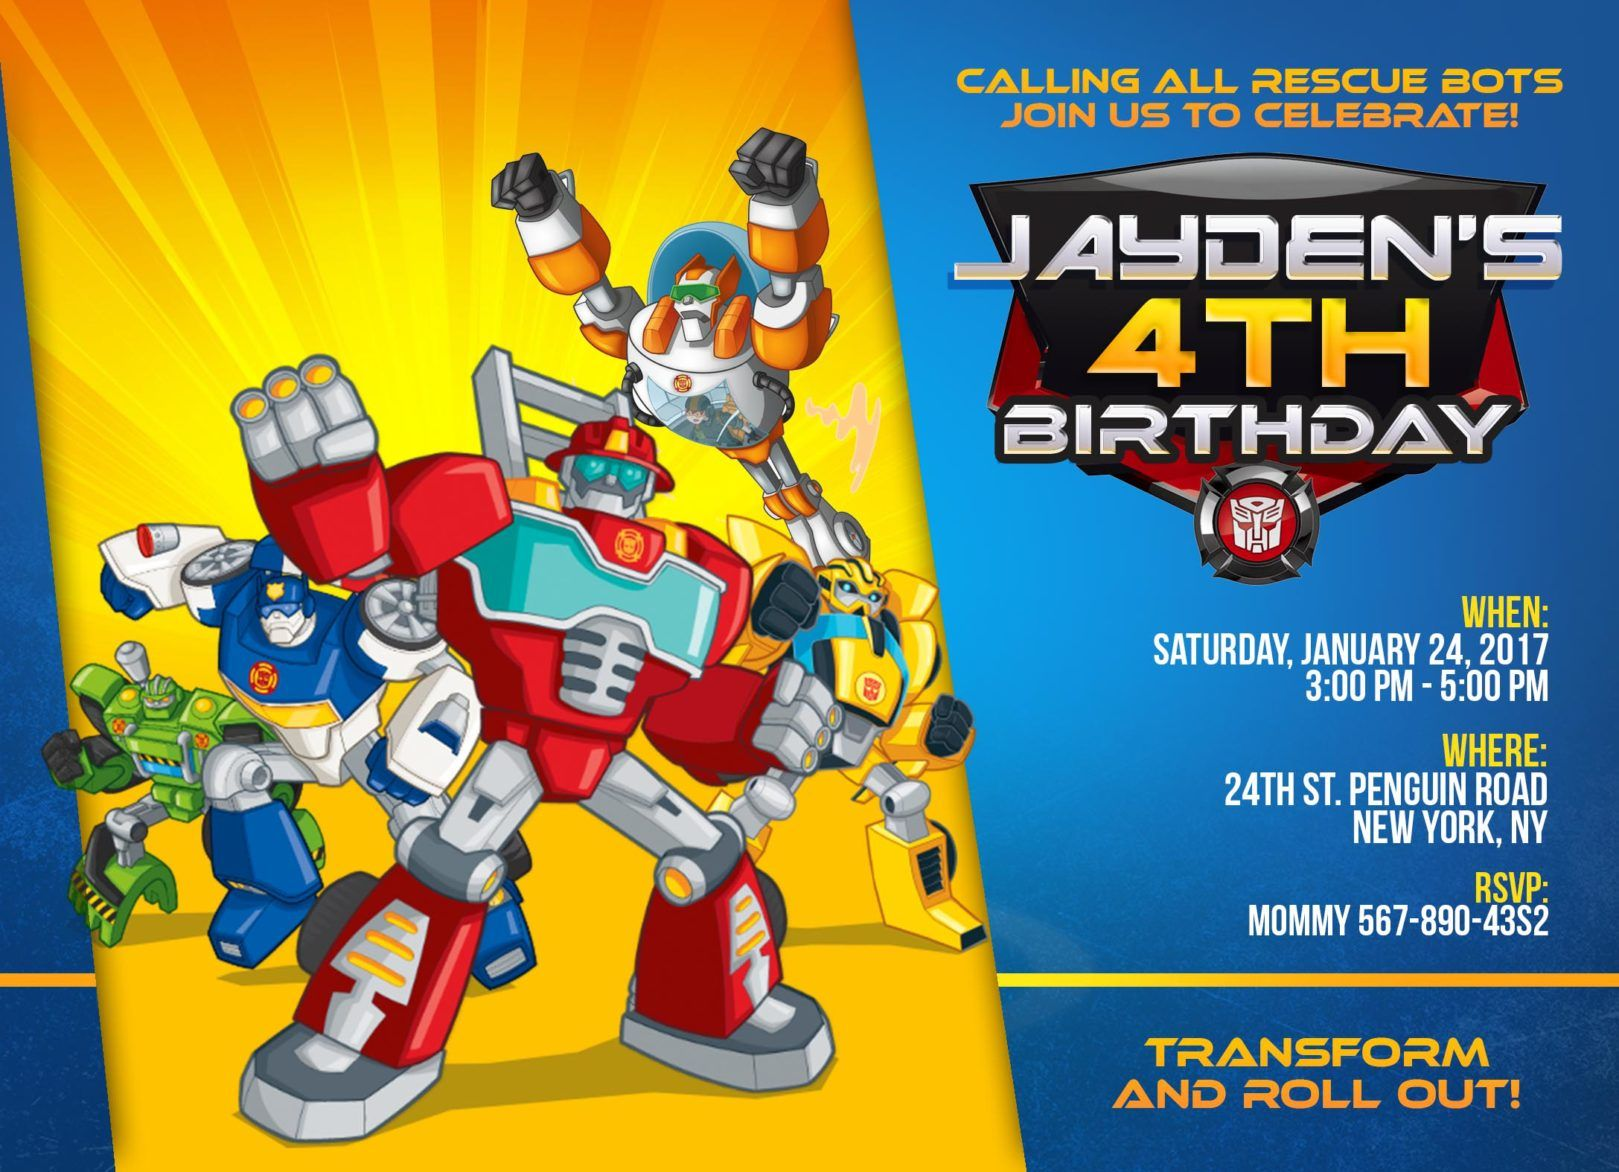 Rescue Bots printable Personalized Transformers Rescue Bots birthday centerpieces Transformers Rescue Bots birthday party Transformers